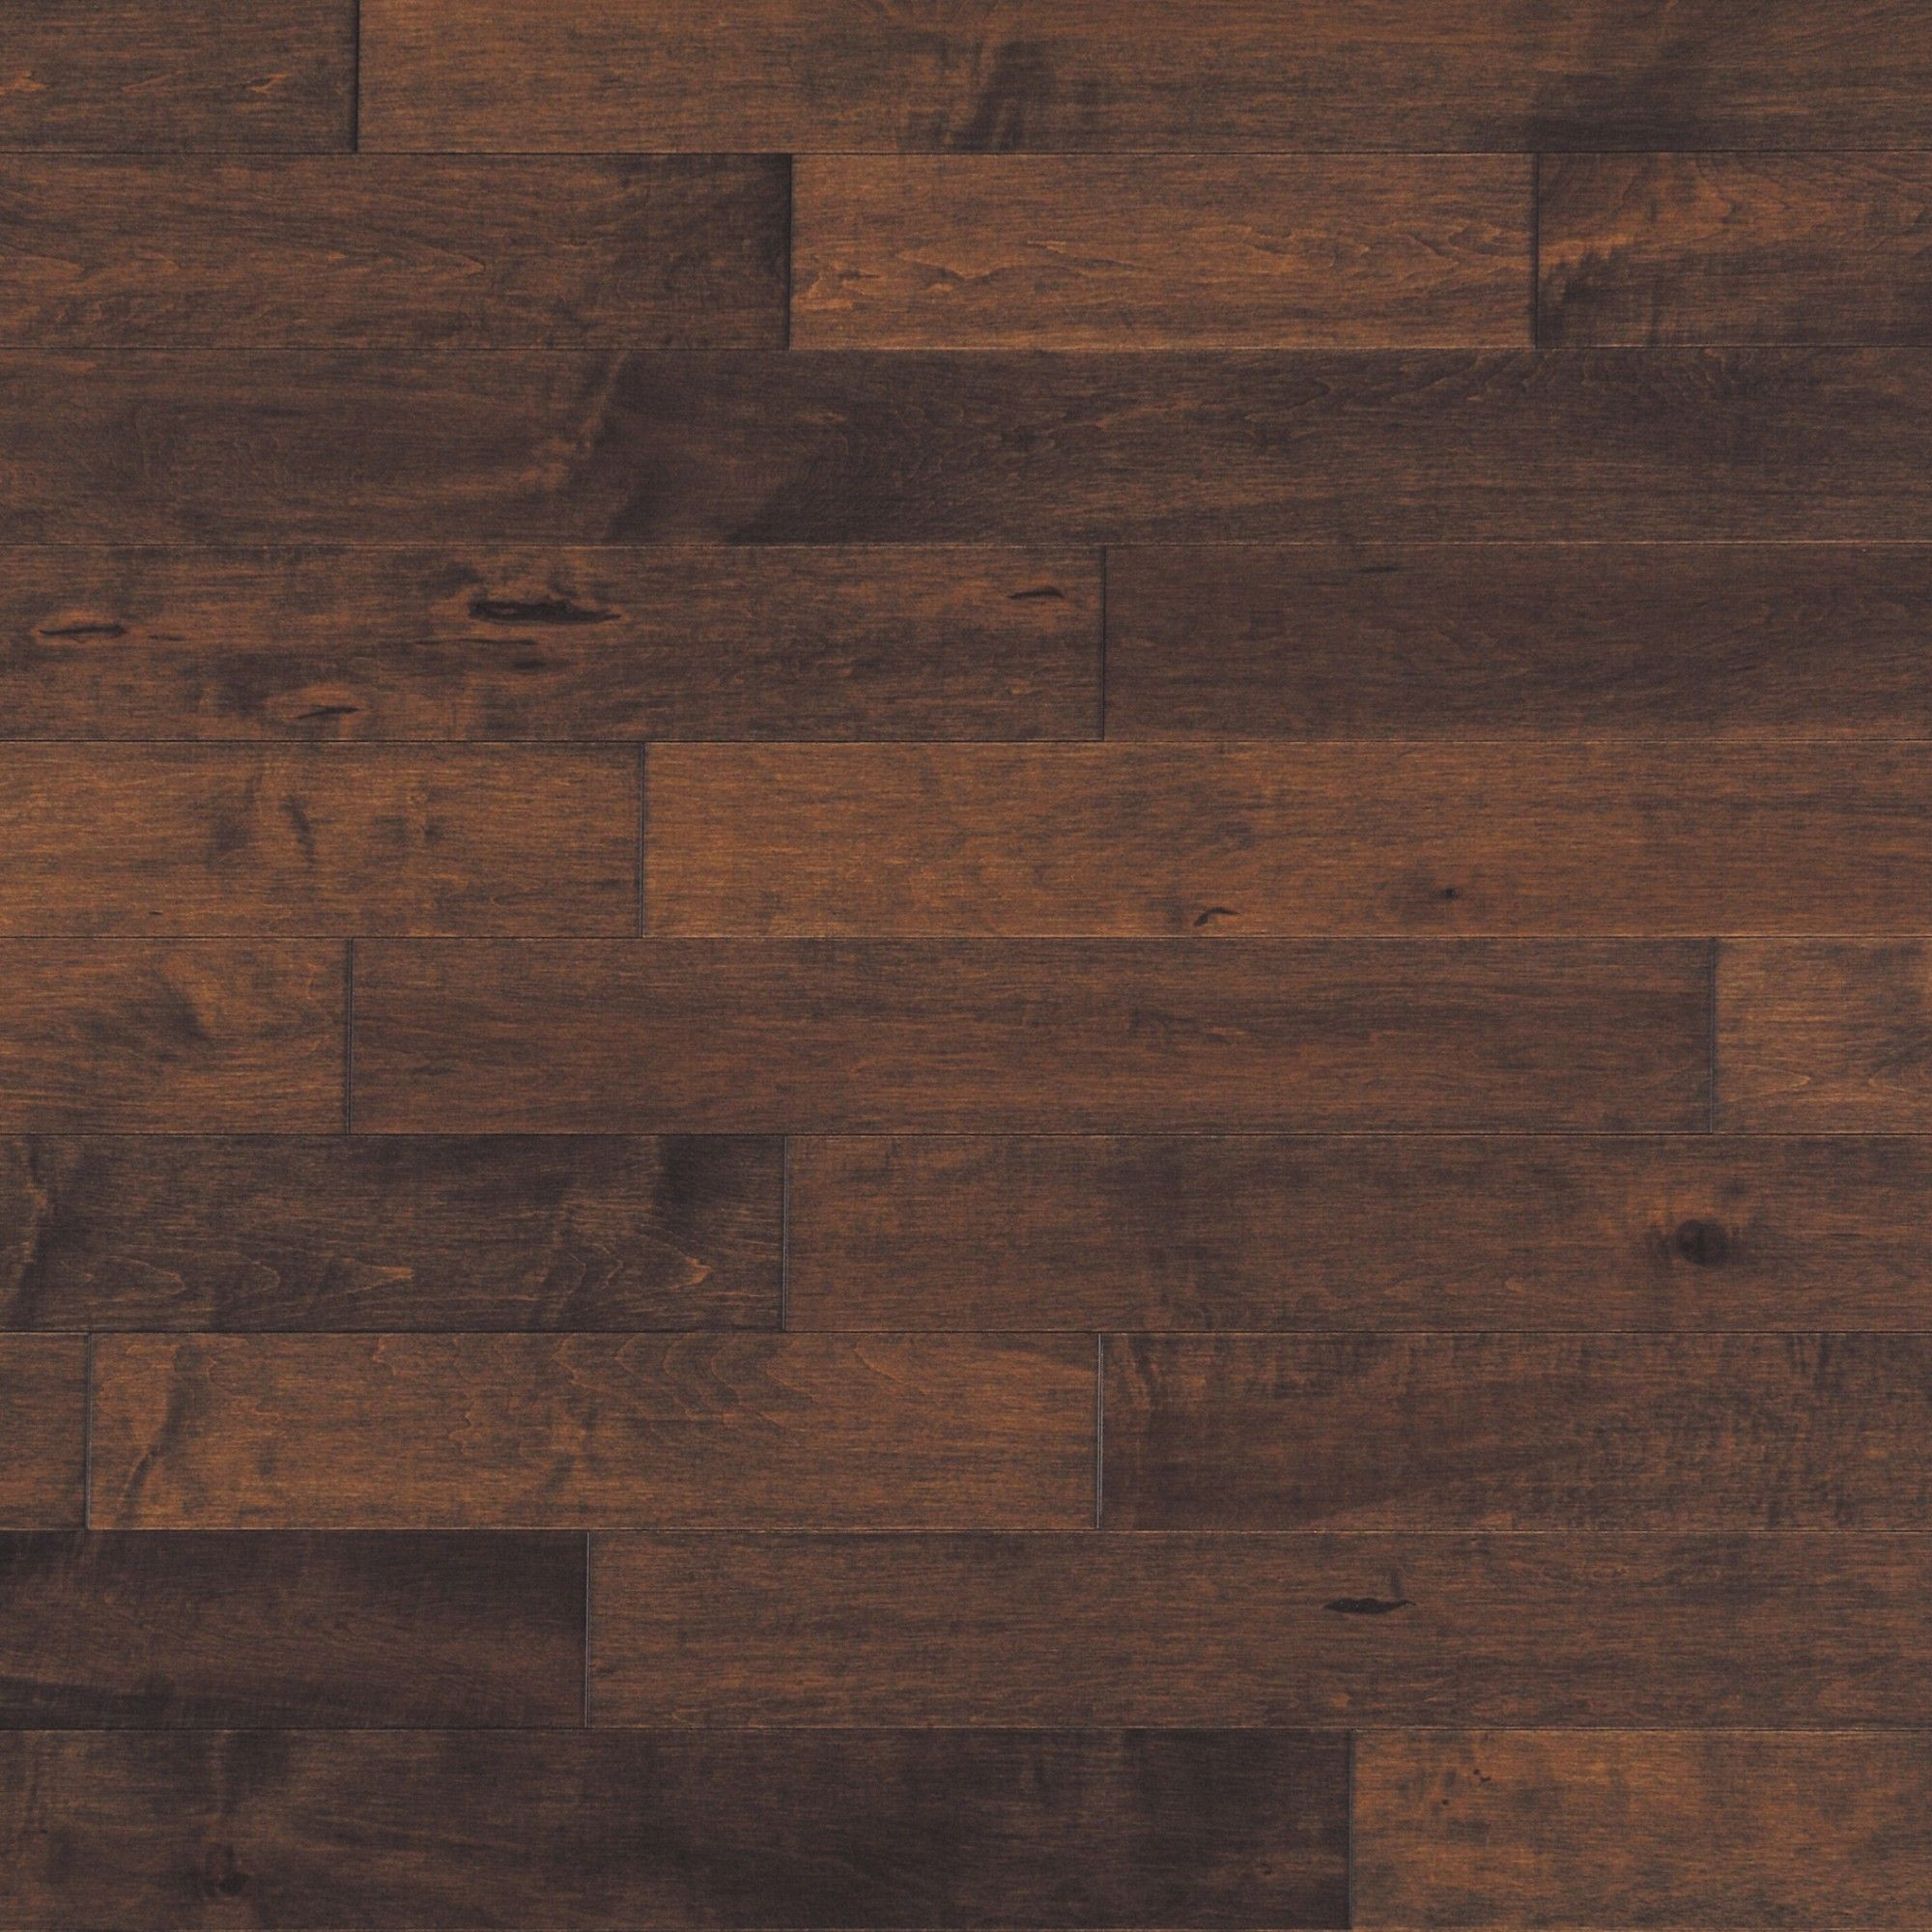 timberland hardwood flooring prices of maple hardwood flooring floor plan ideas with aged maple gingerbread hardwood floor available in classic engineered lock